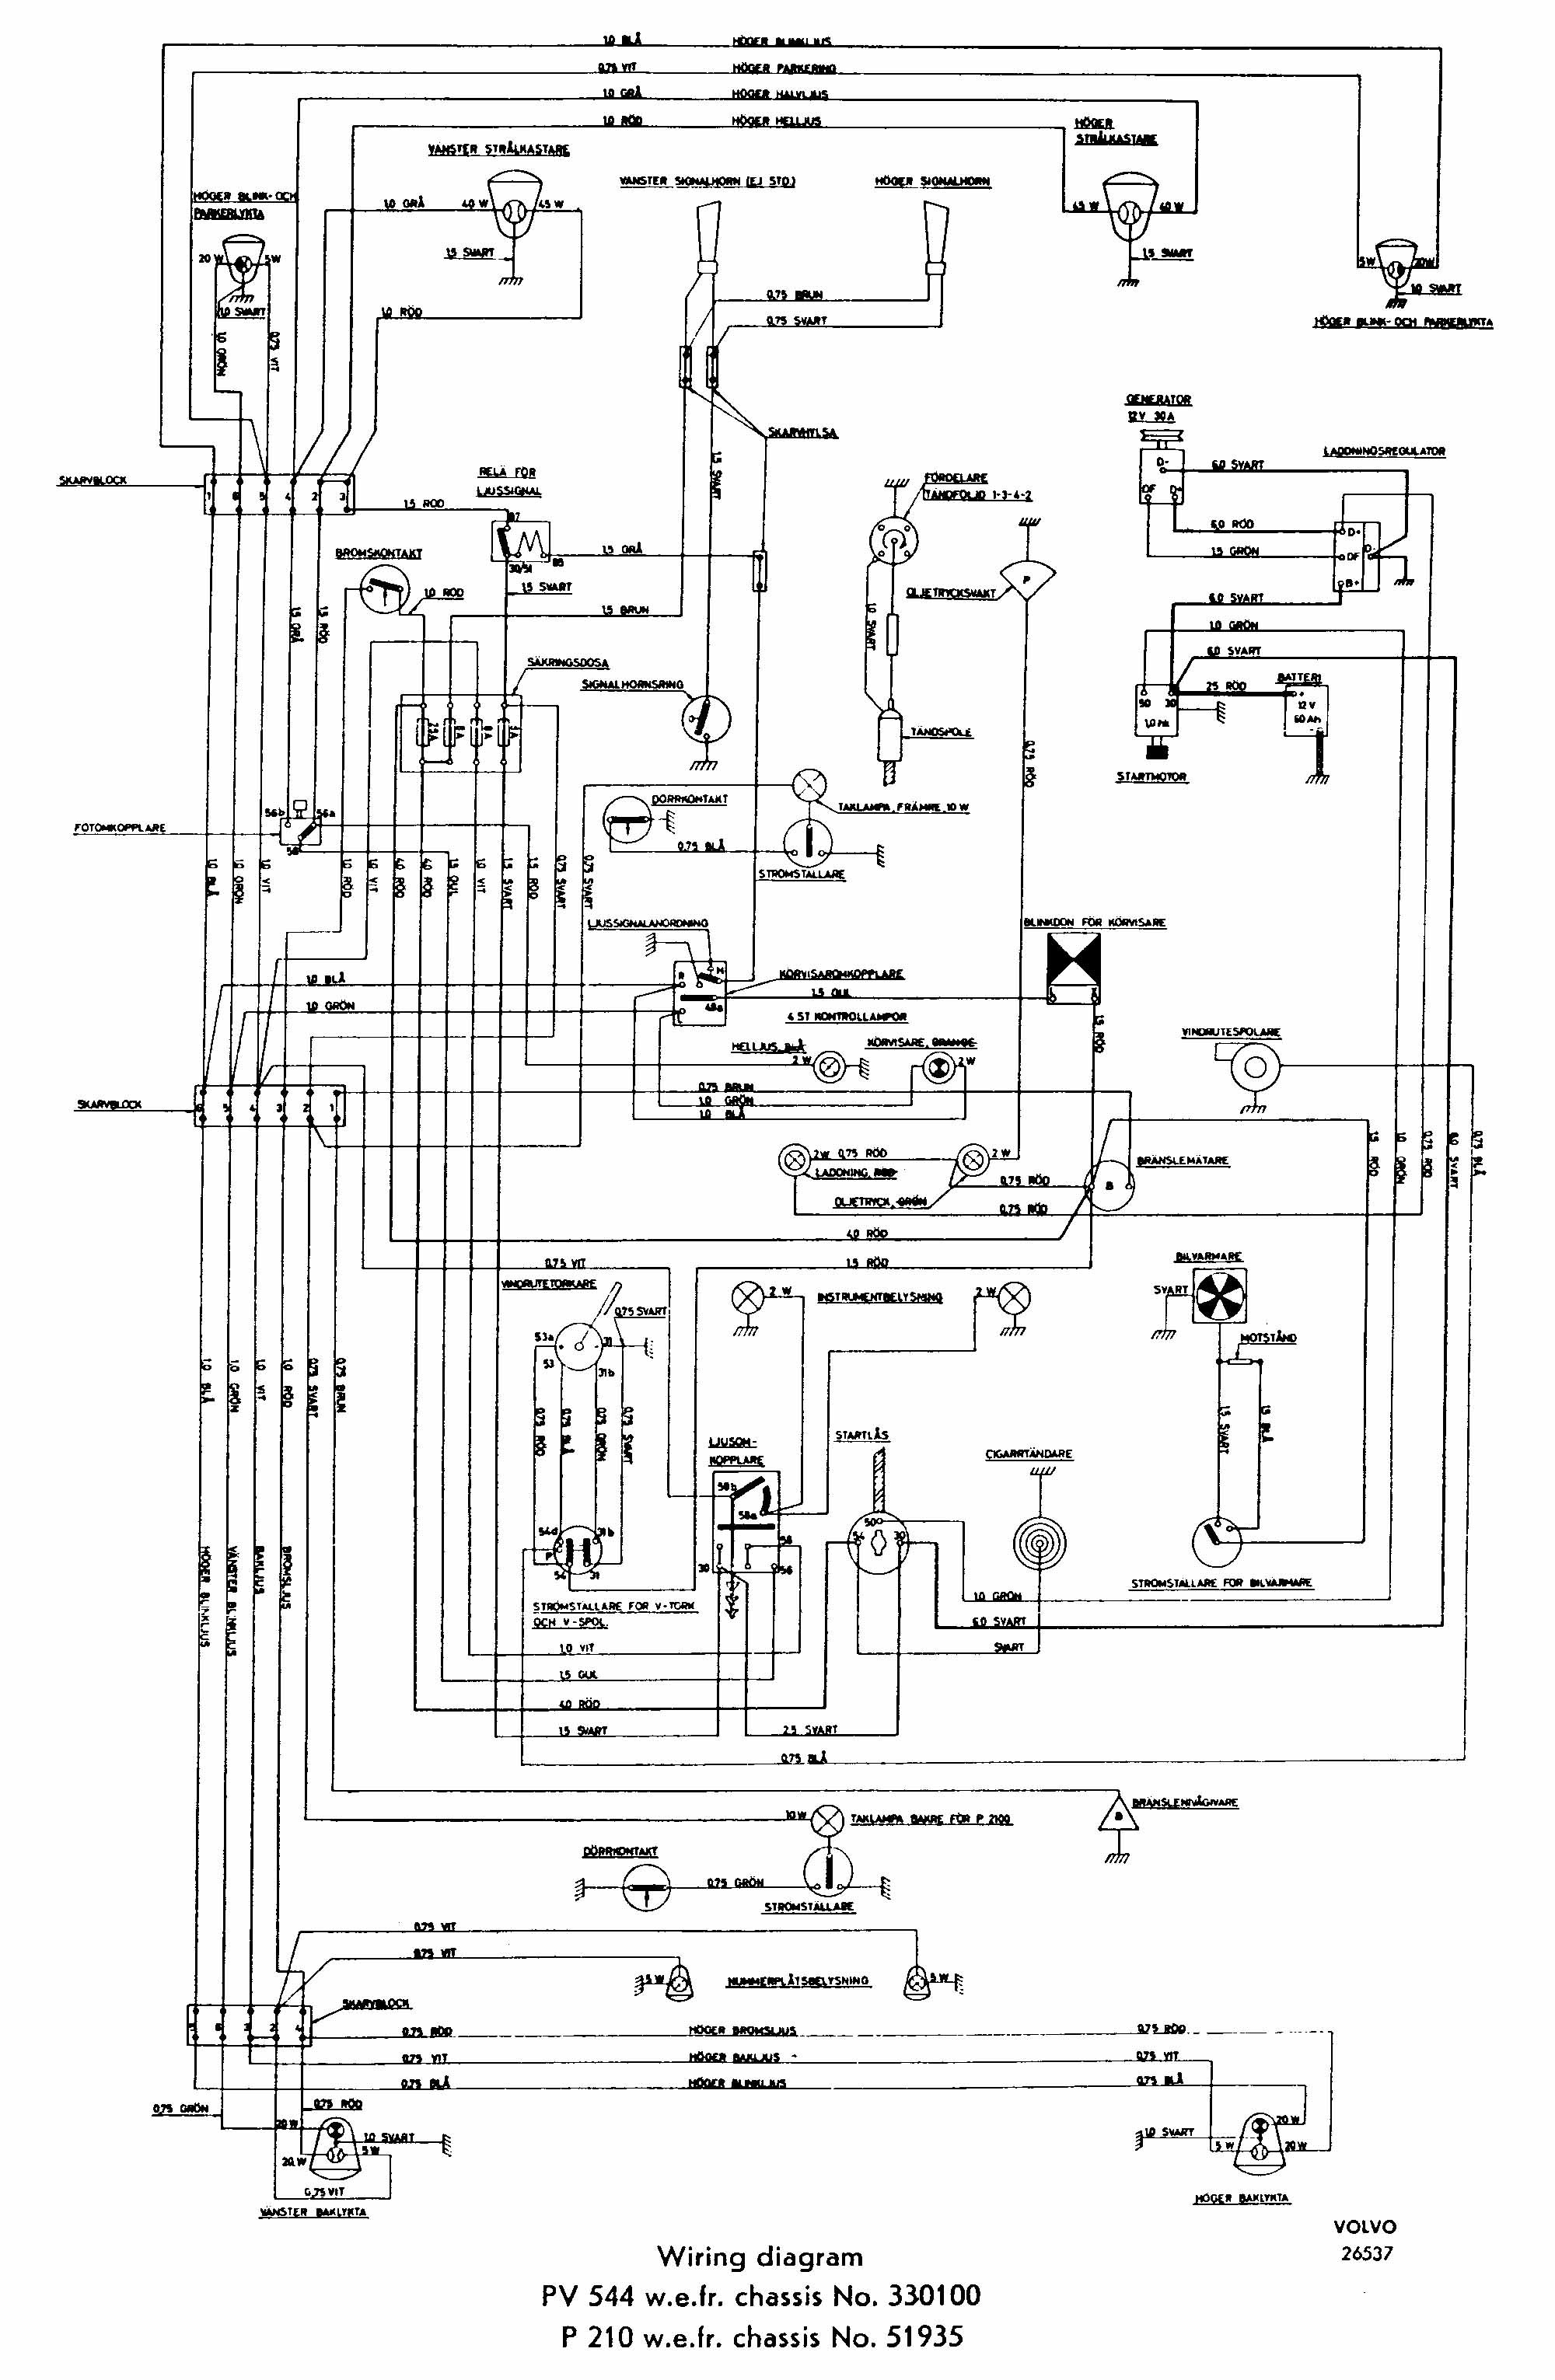 1965 Chevy Truck Wiring Diagram | Wiring Liry on volvo s80 radiator removal, volvo fuse diagram, volvo s80 transmission, volvo 740 turbo engine diagram, volvo t5 engine diagram, volvo v70, 2002 volvo s60 transmission diagram, volvo s80 manual online, volvo xc90, 2004 volvo s80 engine diagram, 2001 volvo s80 engine diagram, volvo s80 2.9, volvo 850 engine diagram, volvo s80 o2 sensor location, volvo 240 vacuum diagram, volvo s80 parts diagram, volvo s80 timing belt diagram, volvo s80 problems, volvo truck engine diagram, volvo s80 fuel pump relay,